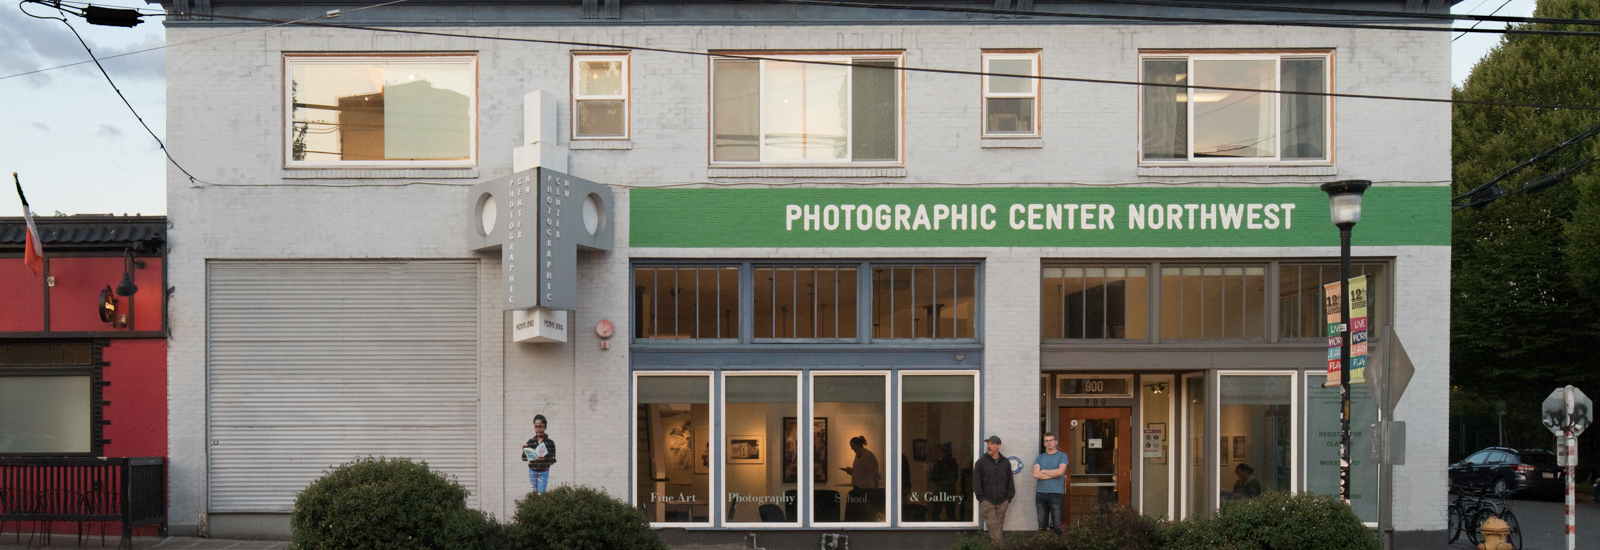 ed53a8afc8c Photographic Center Northwest (PCNW) TEACHES PEOPLE HOW TO SEE.